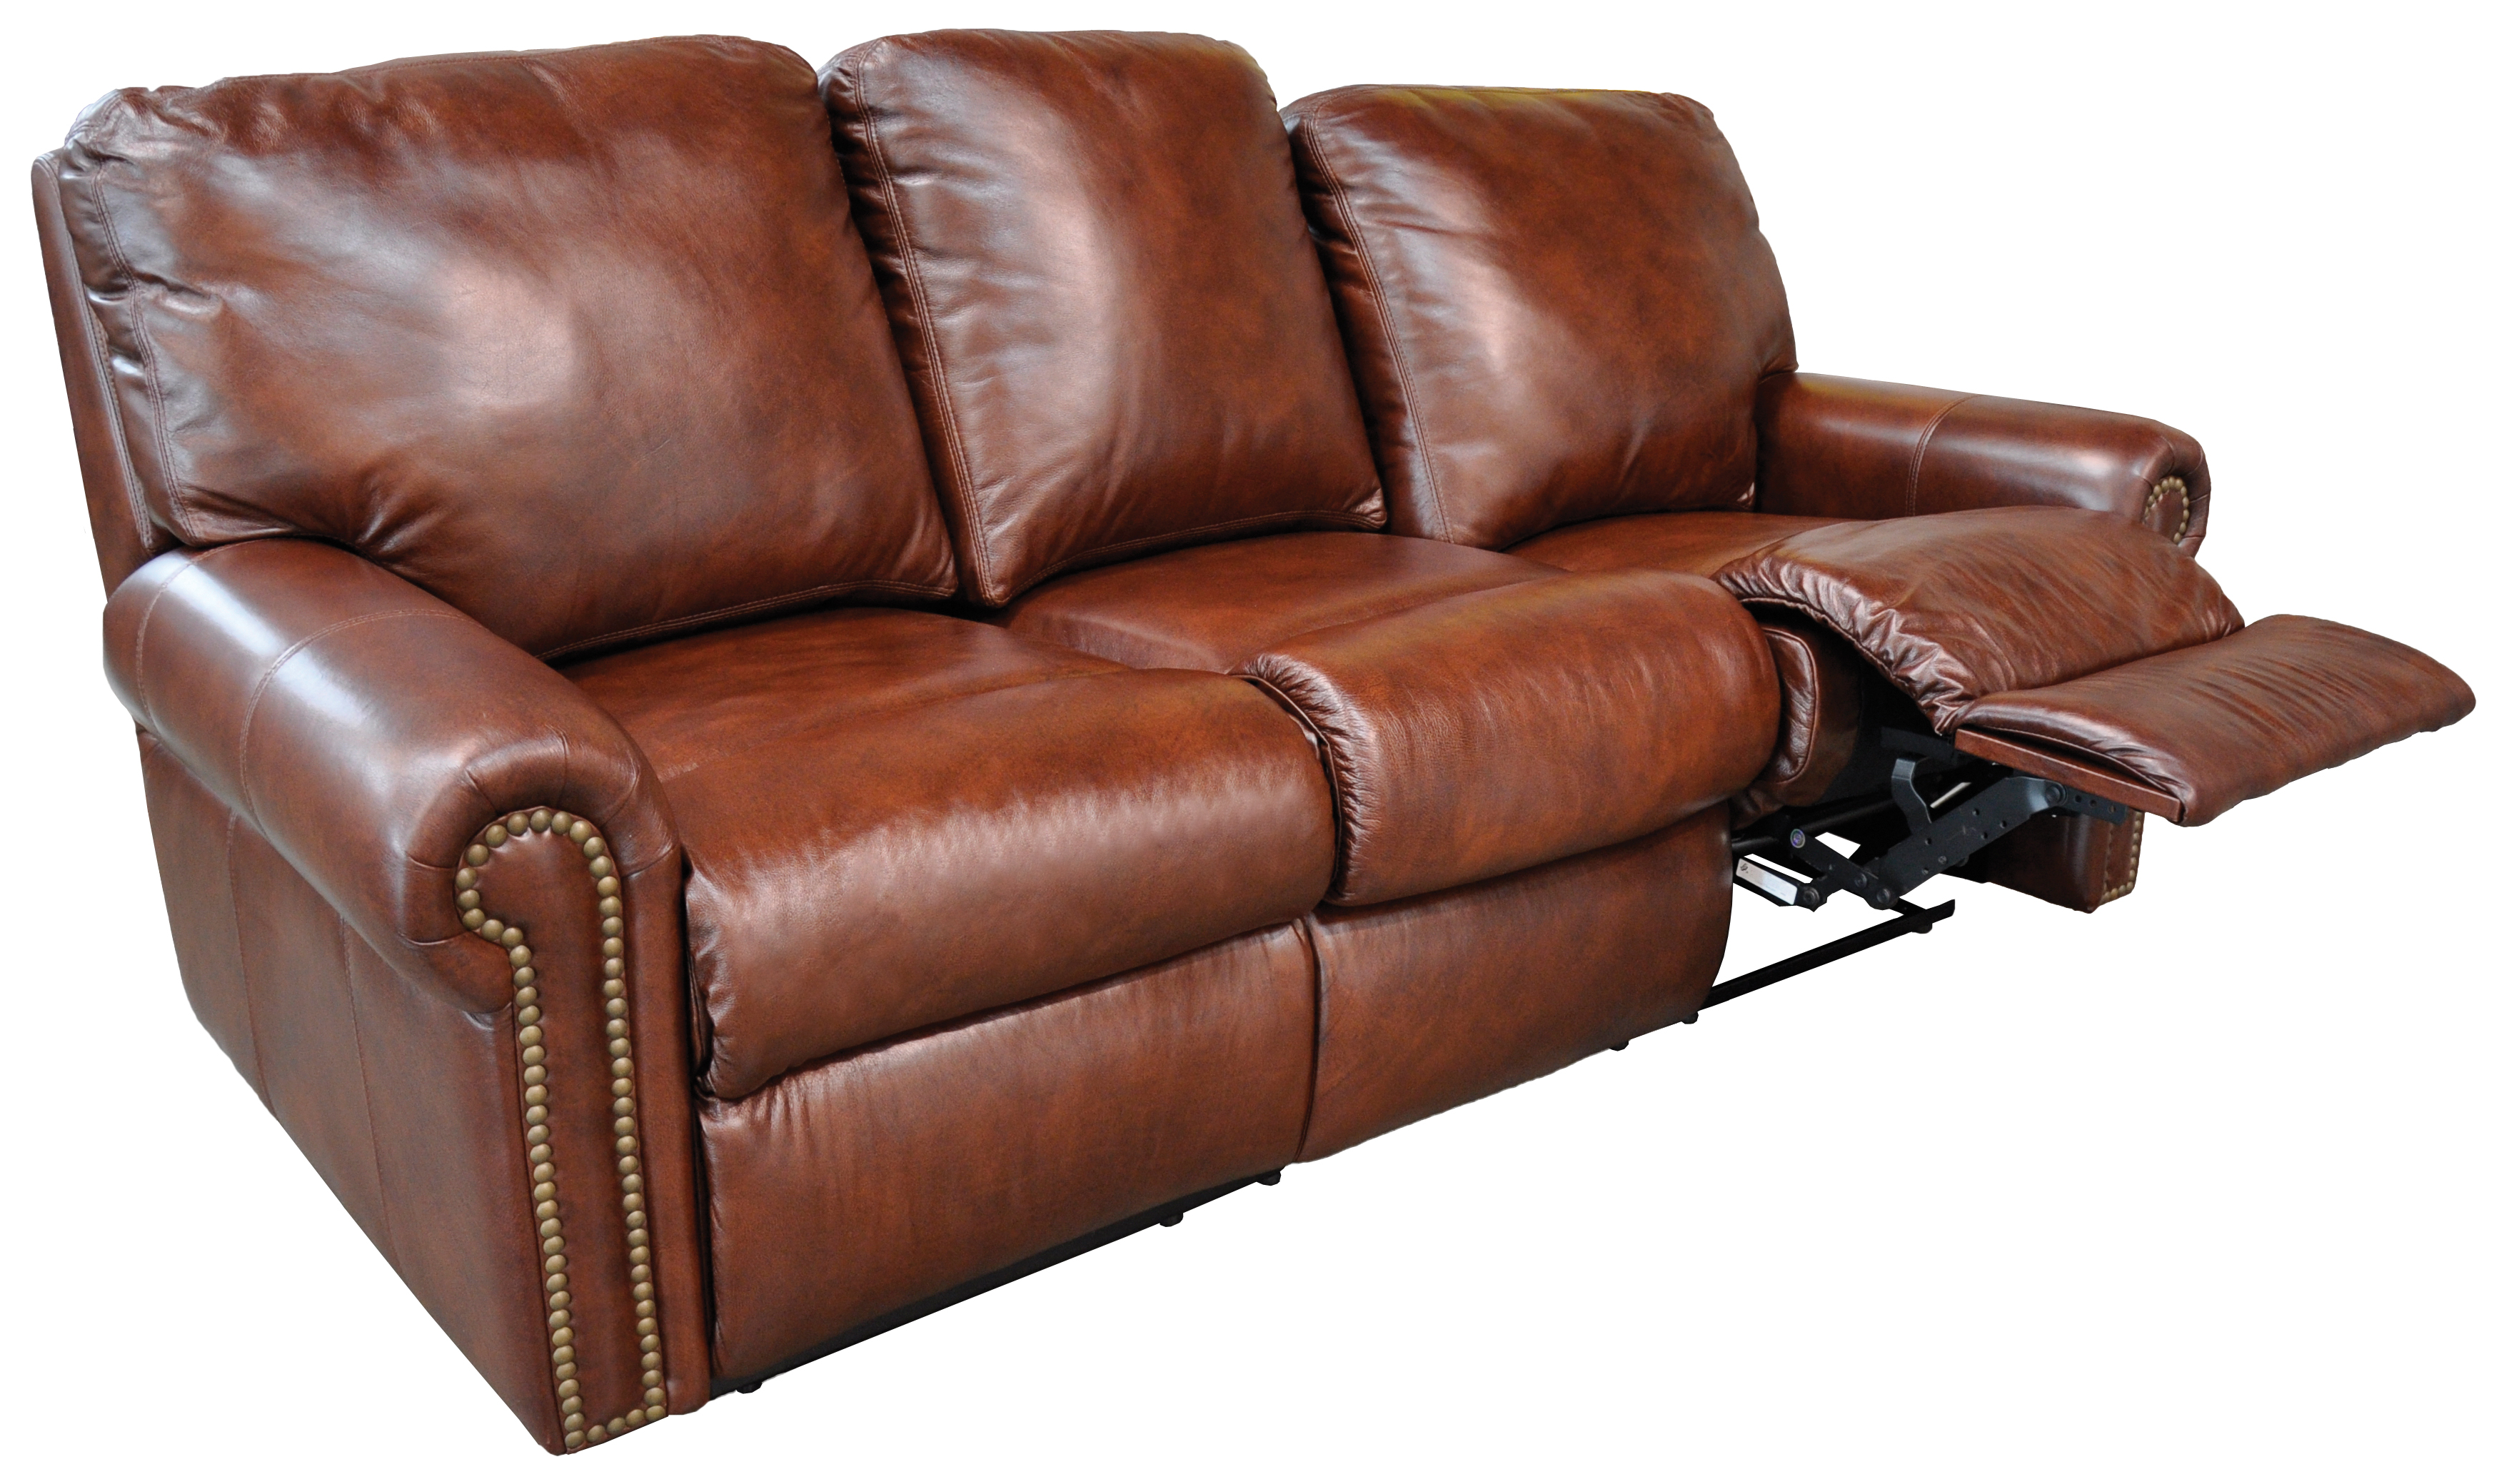 leather reclining sofa fairmont reclining leather GKQXBUY